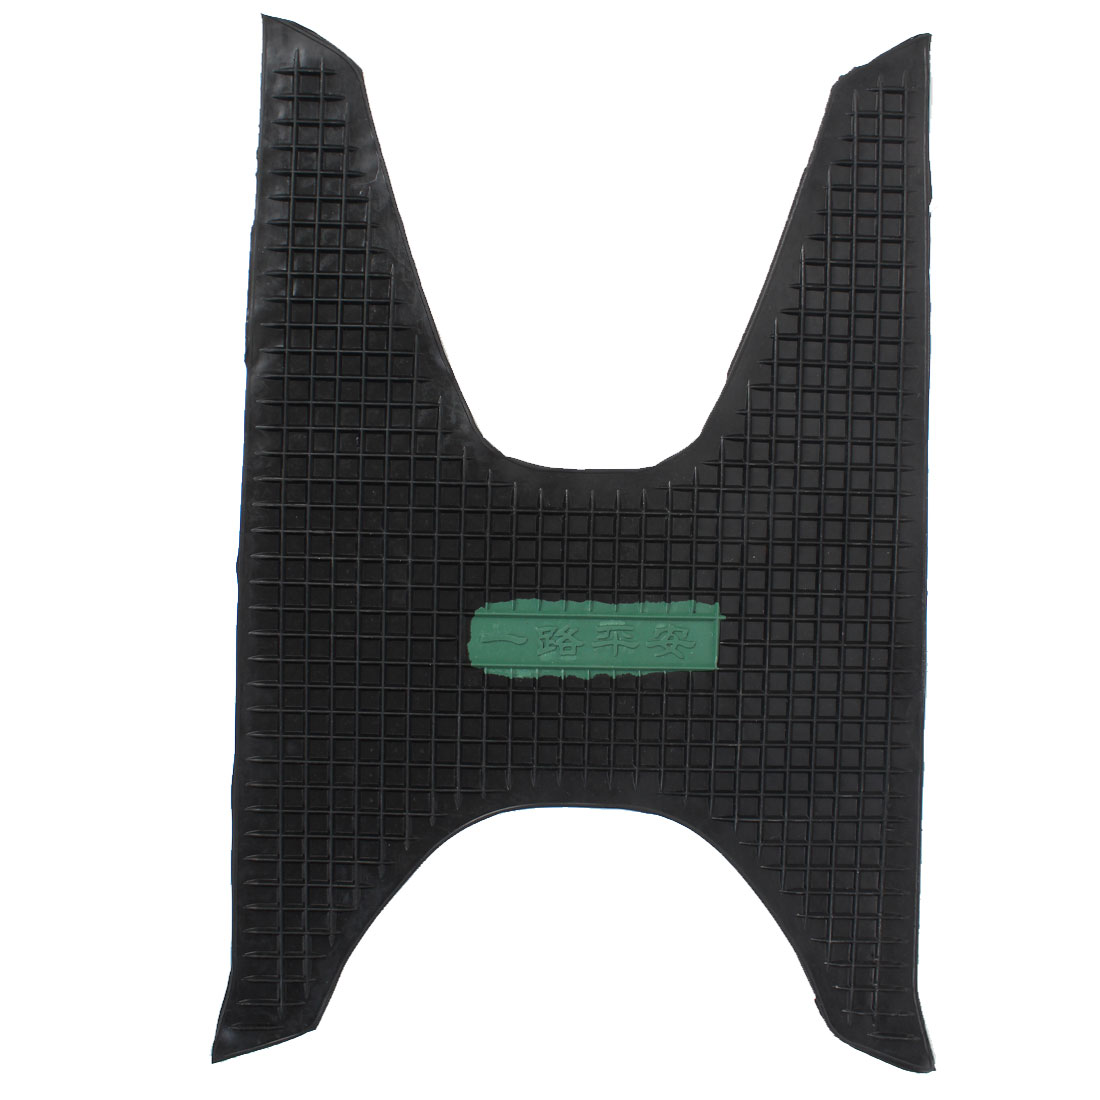 Black Rubber Motorcycle Scooter Foot Skid Pad Carpet Floor Mat